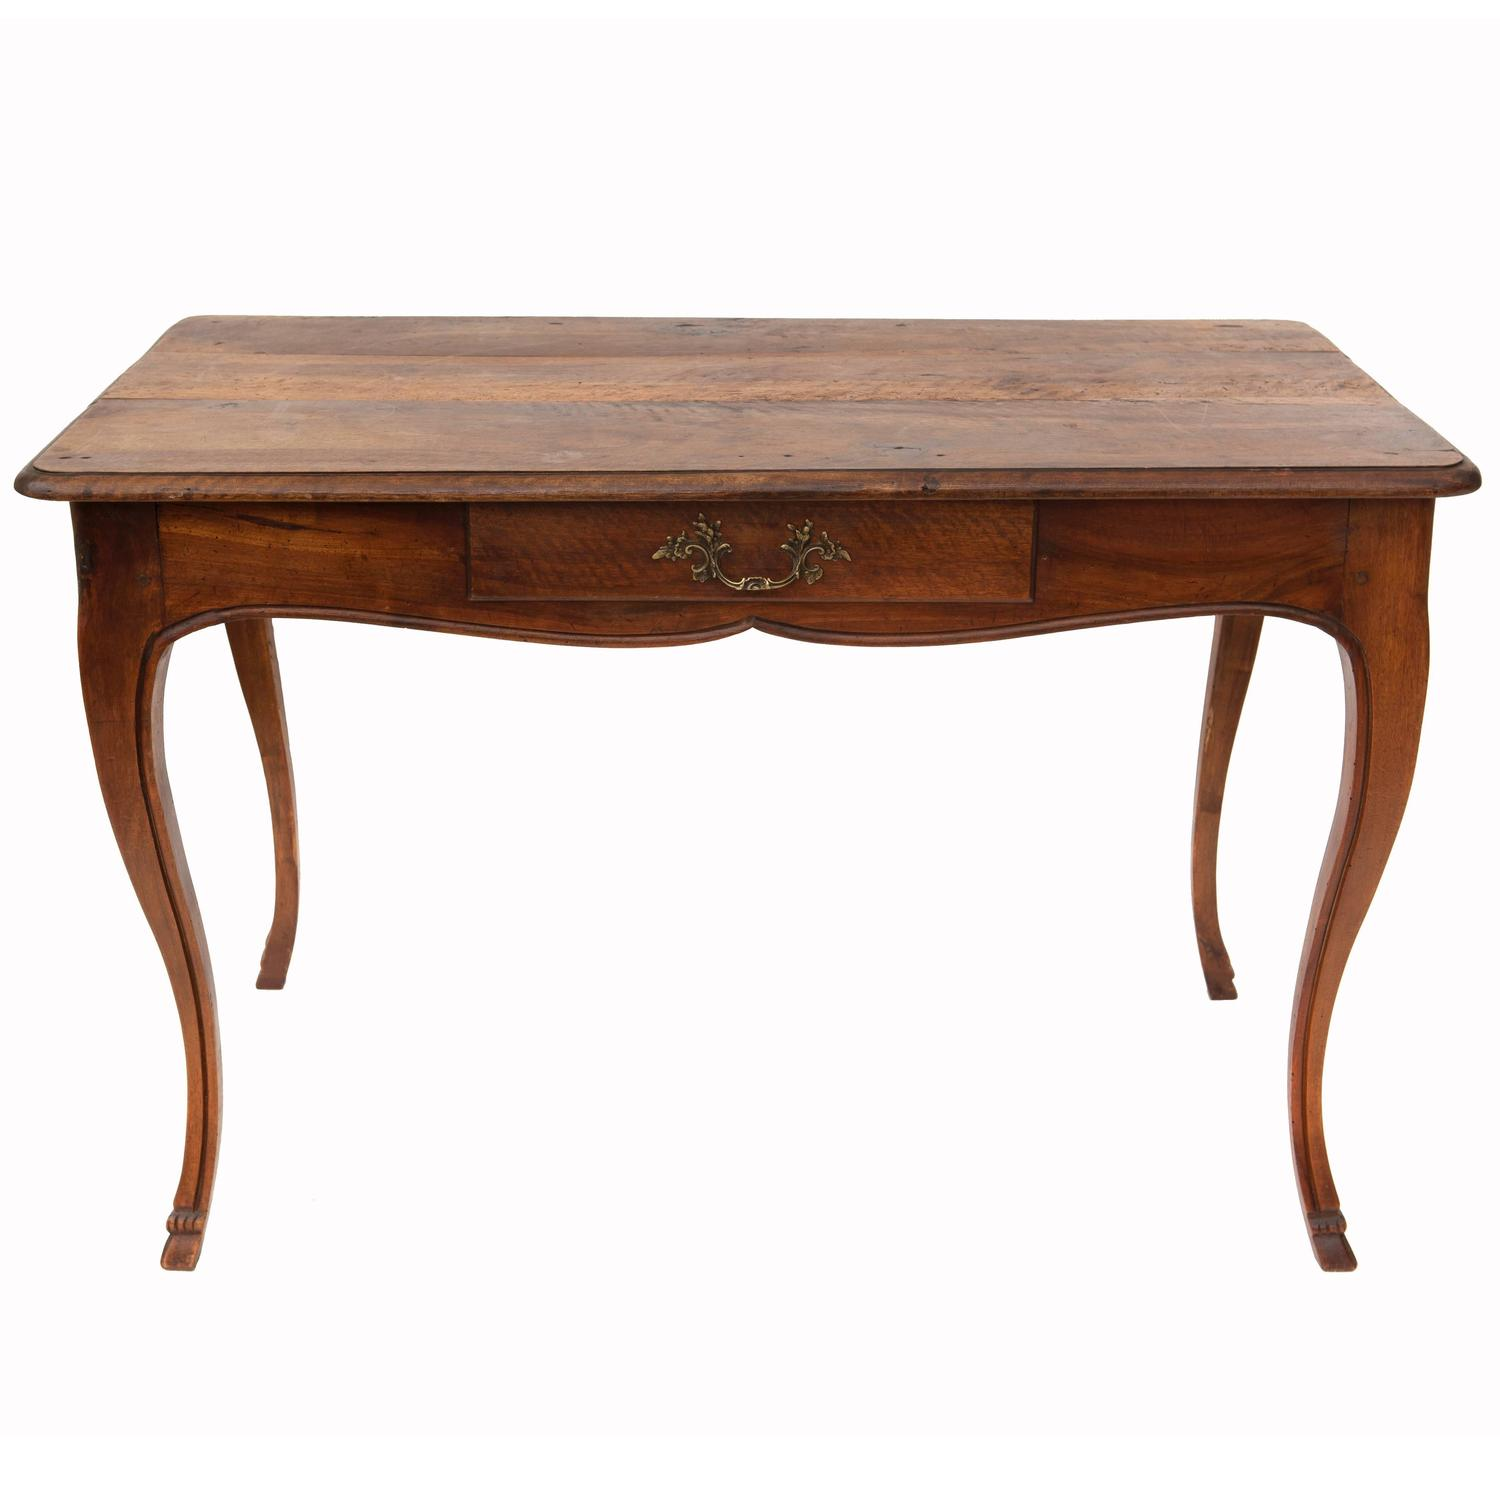 Louis xv side table for sale at 1stdibs - Table louis xv ...